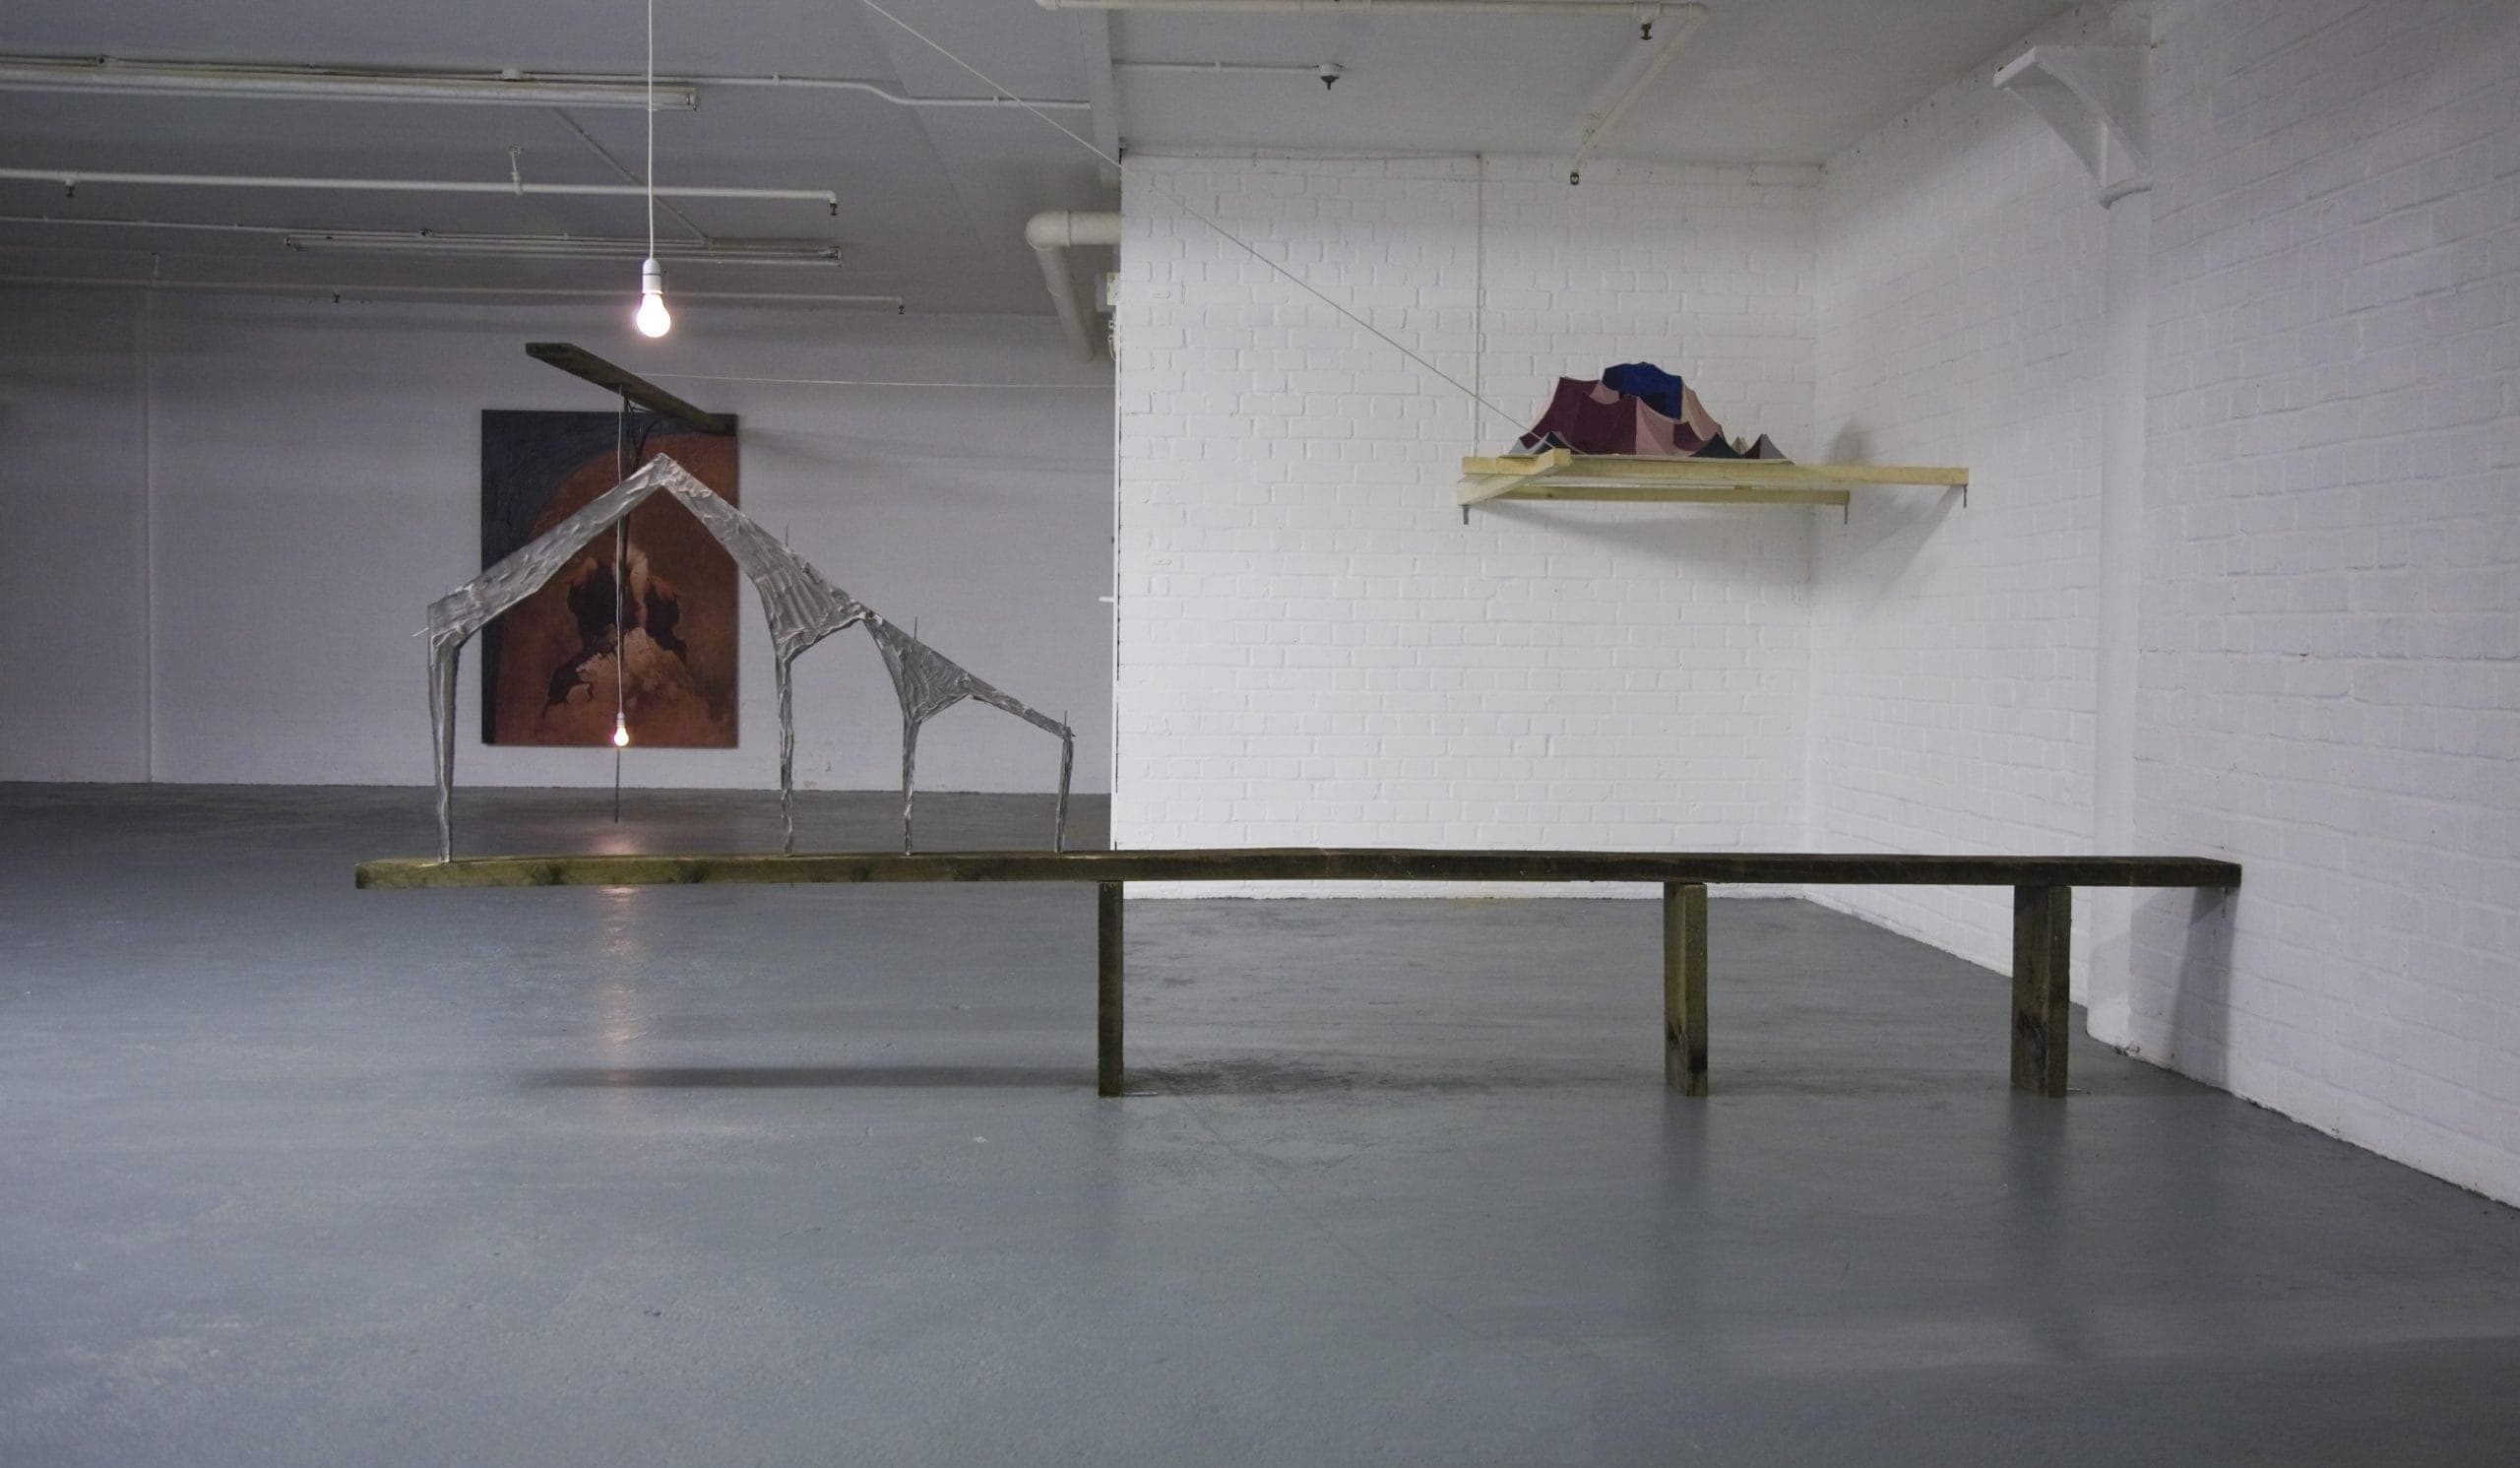 Will Eat This Sleepy Town  Marcin Dudek Ben Washinton  Waterside Project Space, London January - February 2011  Works shown: Ben Washington Massive Fat Removal  http://watersideprojectspace.org/  Photo: Pierre d'Alancaisez  Copyright Waterside Proje Project Space and artists, 2011. Any use is prohibited without the express permission of the gallery.